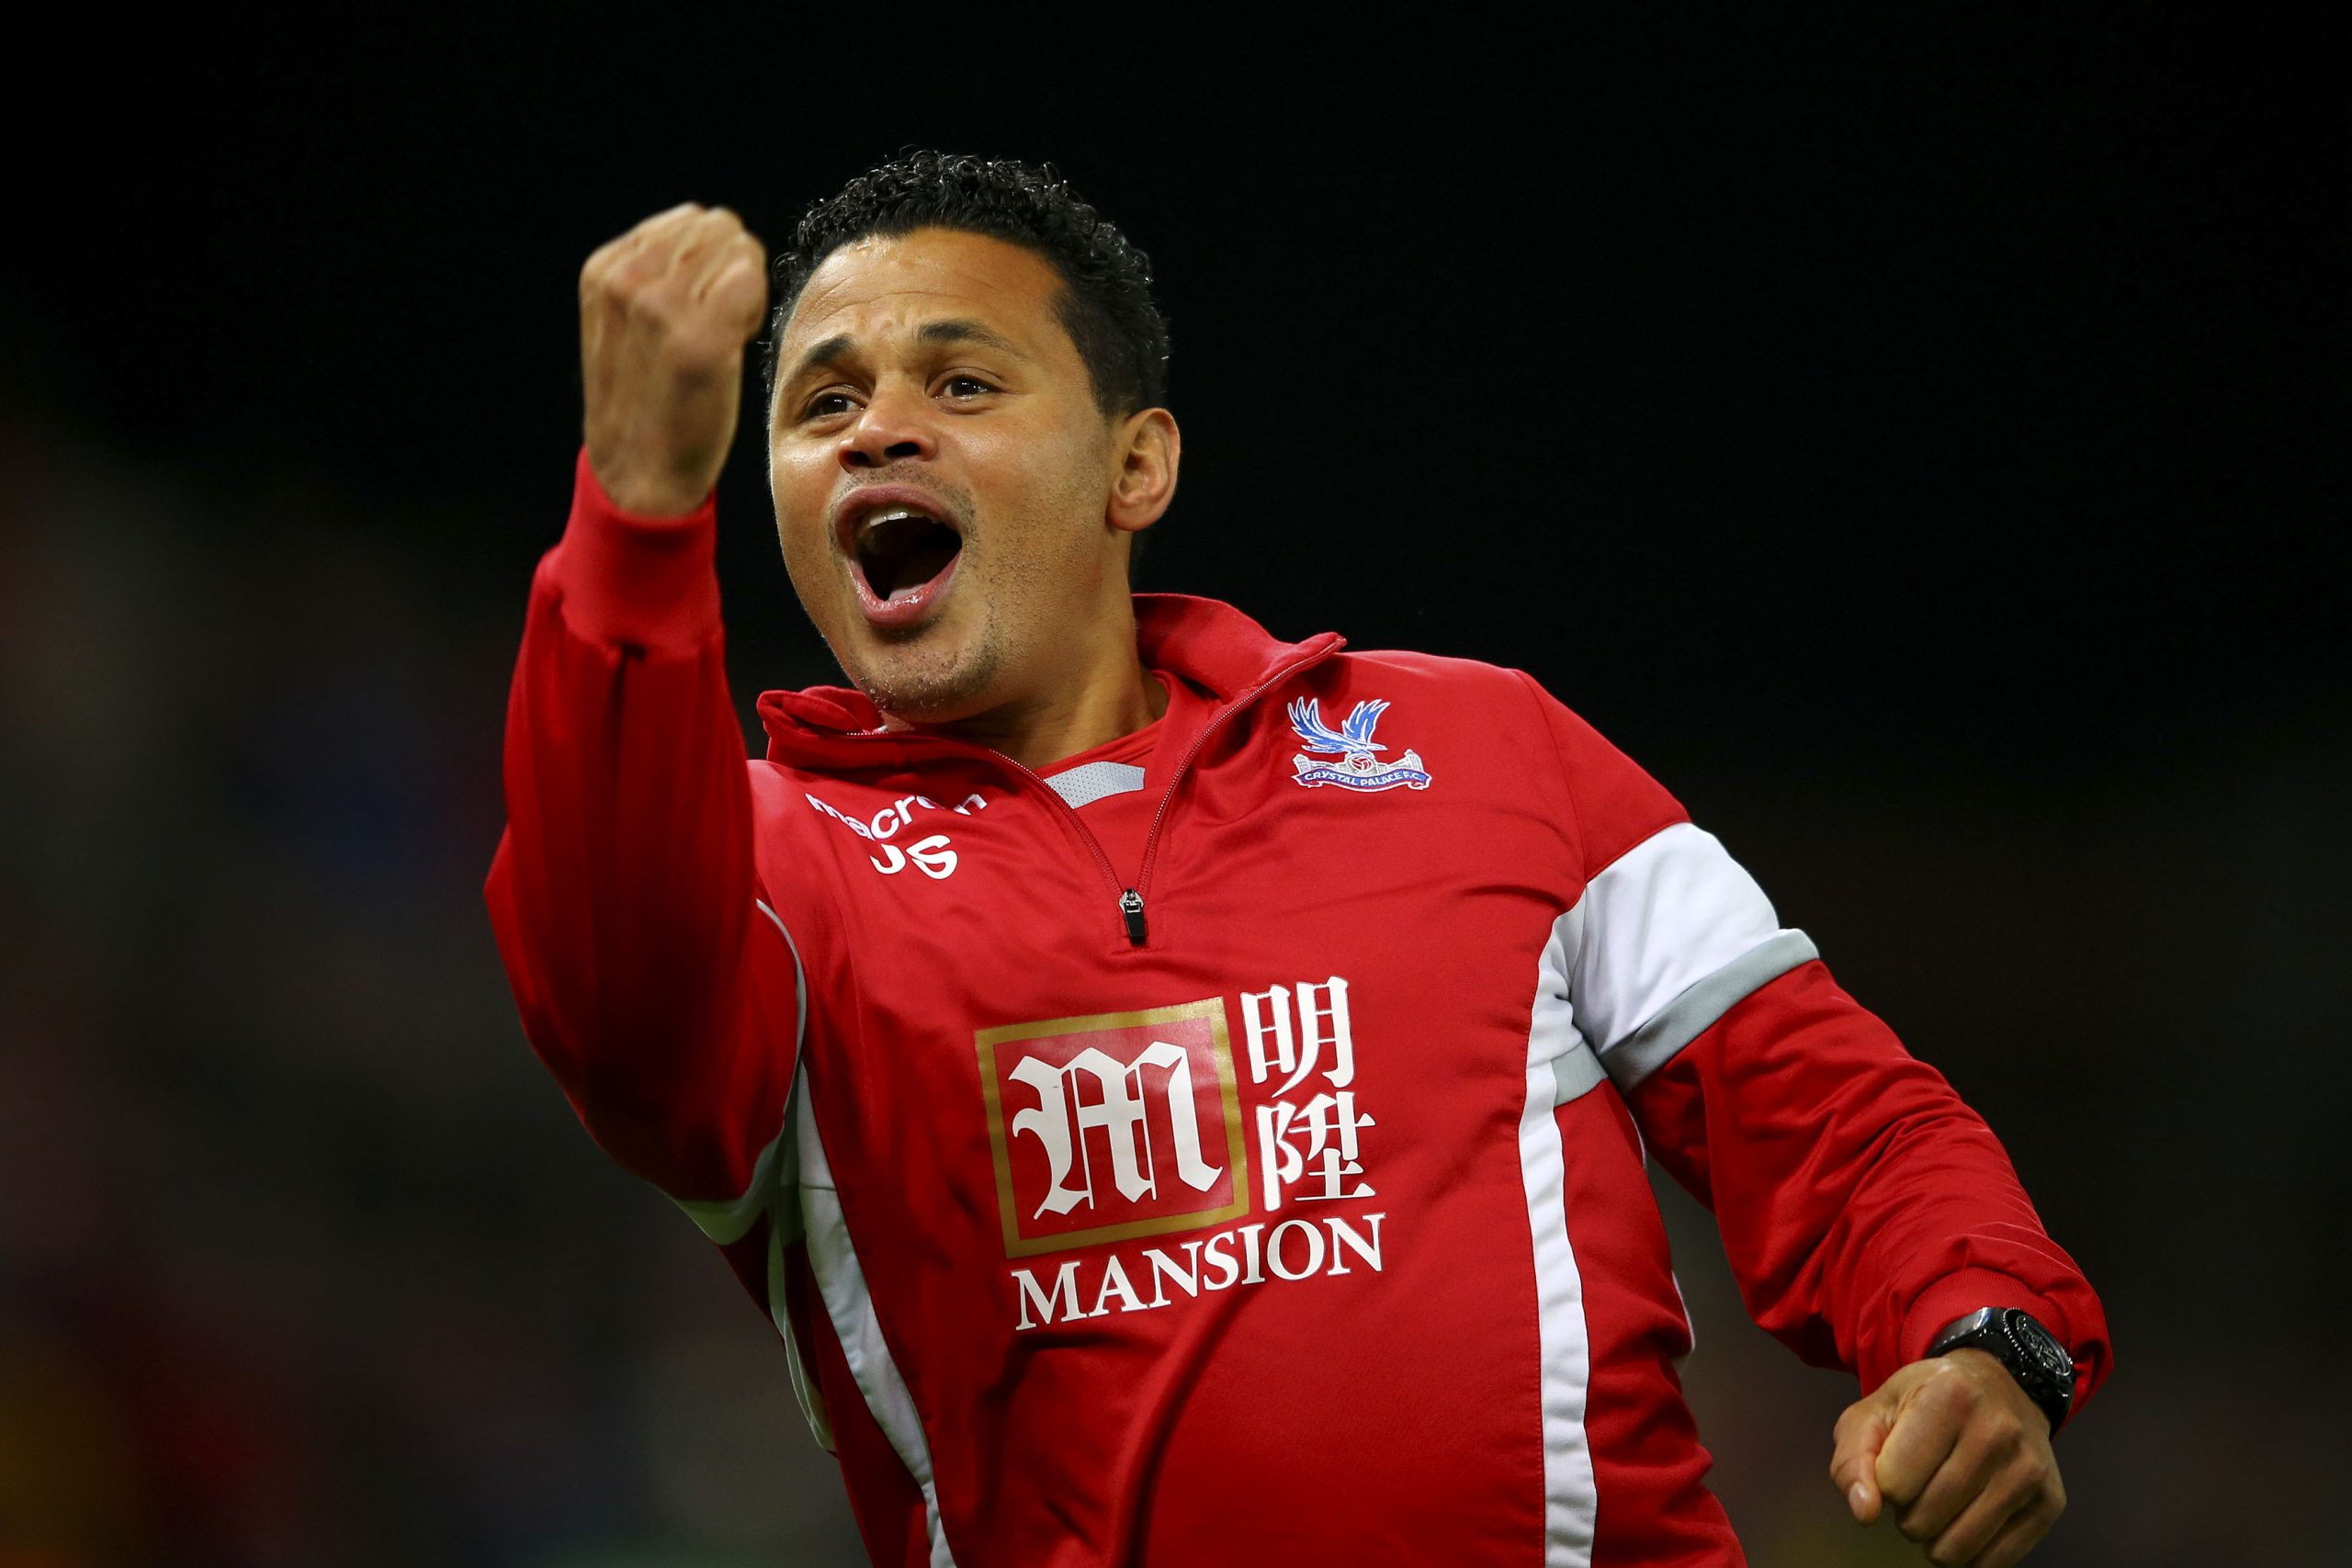 9 December 2015: Assistant coach John Salako celebrates at the final whistle of the Barclays Premier League match between Stoke City and Crystal Palace at the Britannia Stadium in Stoke-on-Trent, England. (Photograph by Richard Heathcote/ Getty Images)